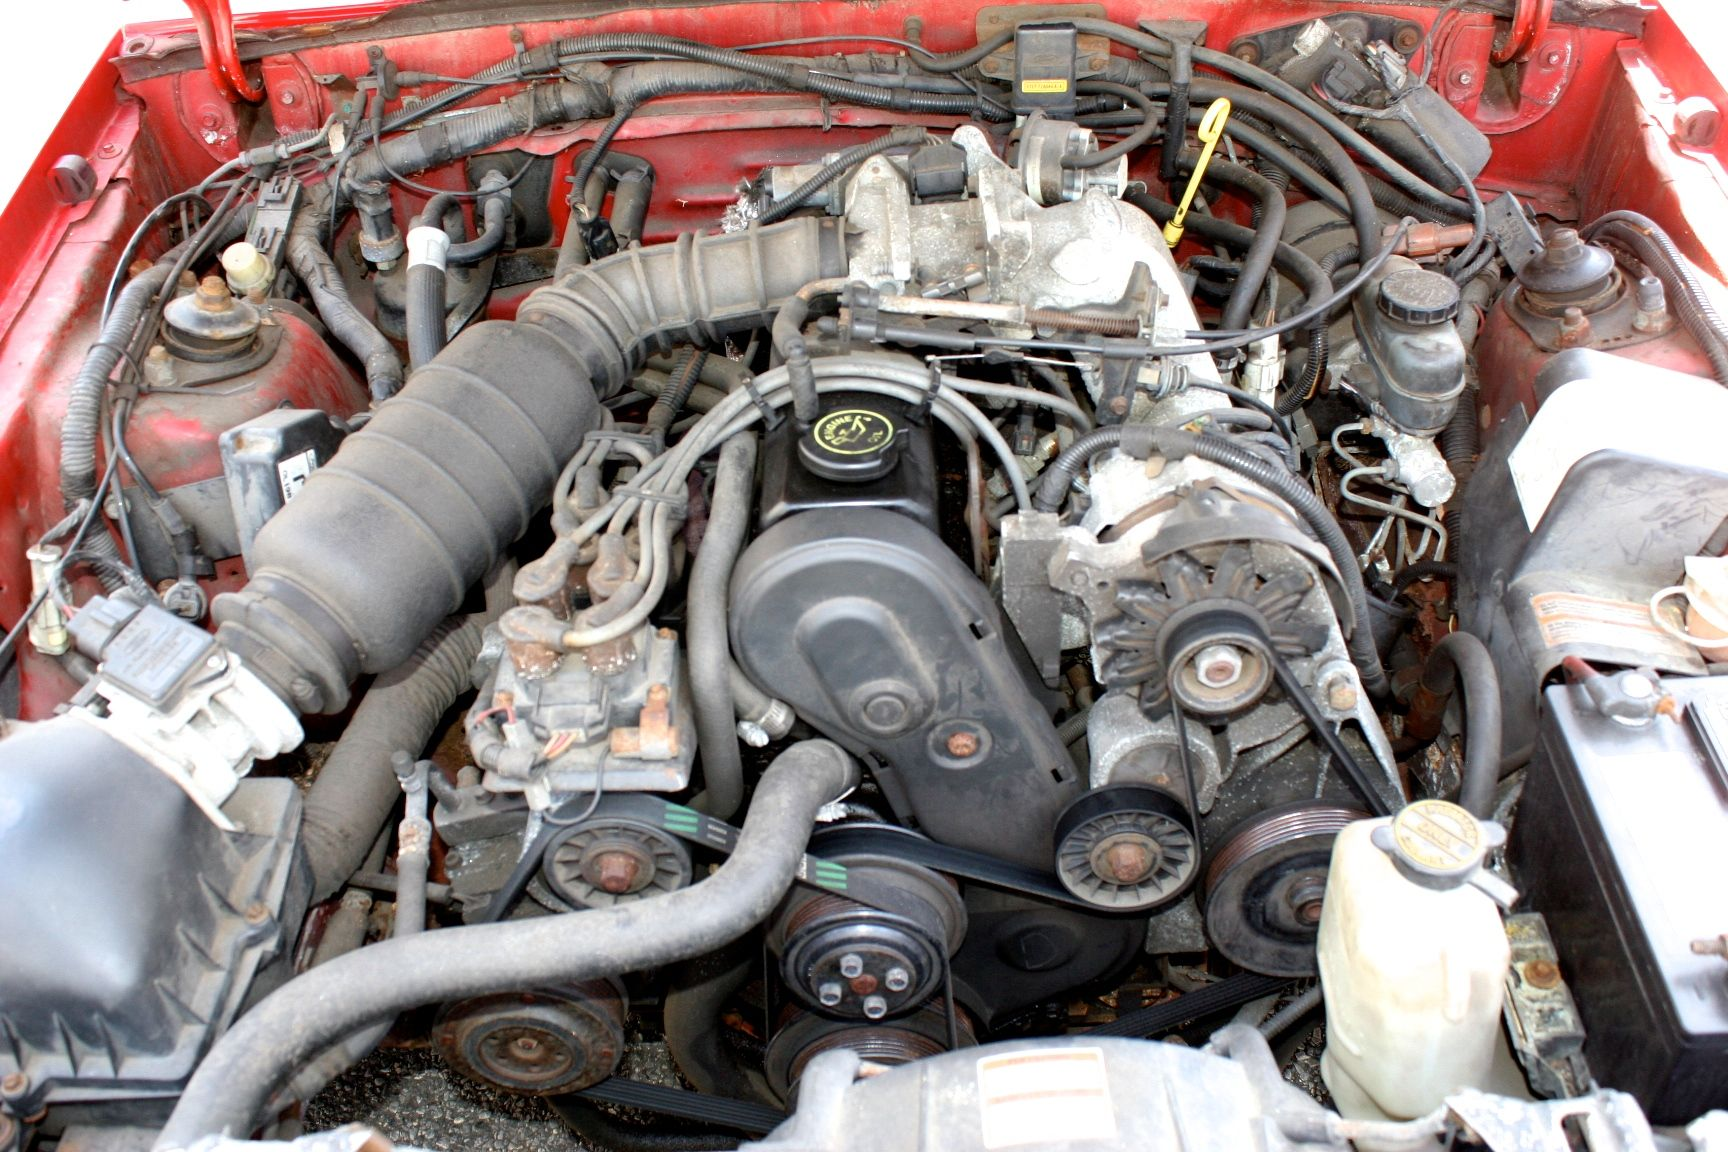 Ford Ranger 2.3 L Engine For Sale >> 1991 Ford Mustang Lx Convertible 2 3l Engine With 8 Spark